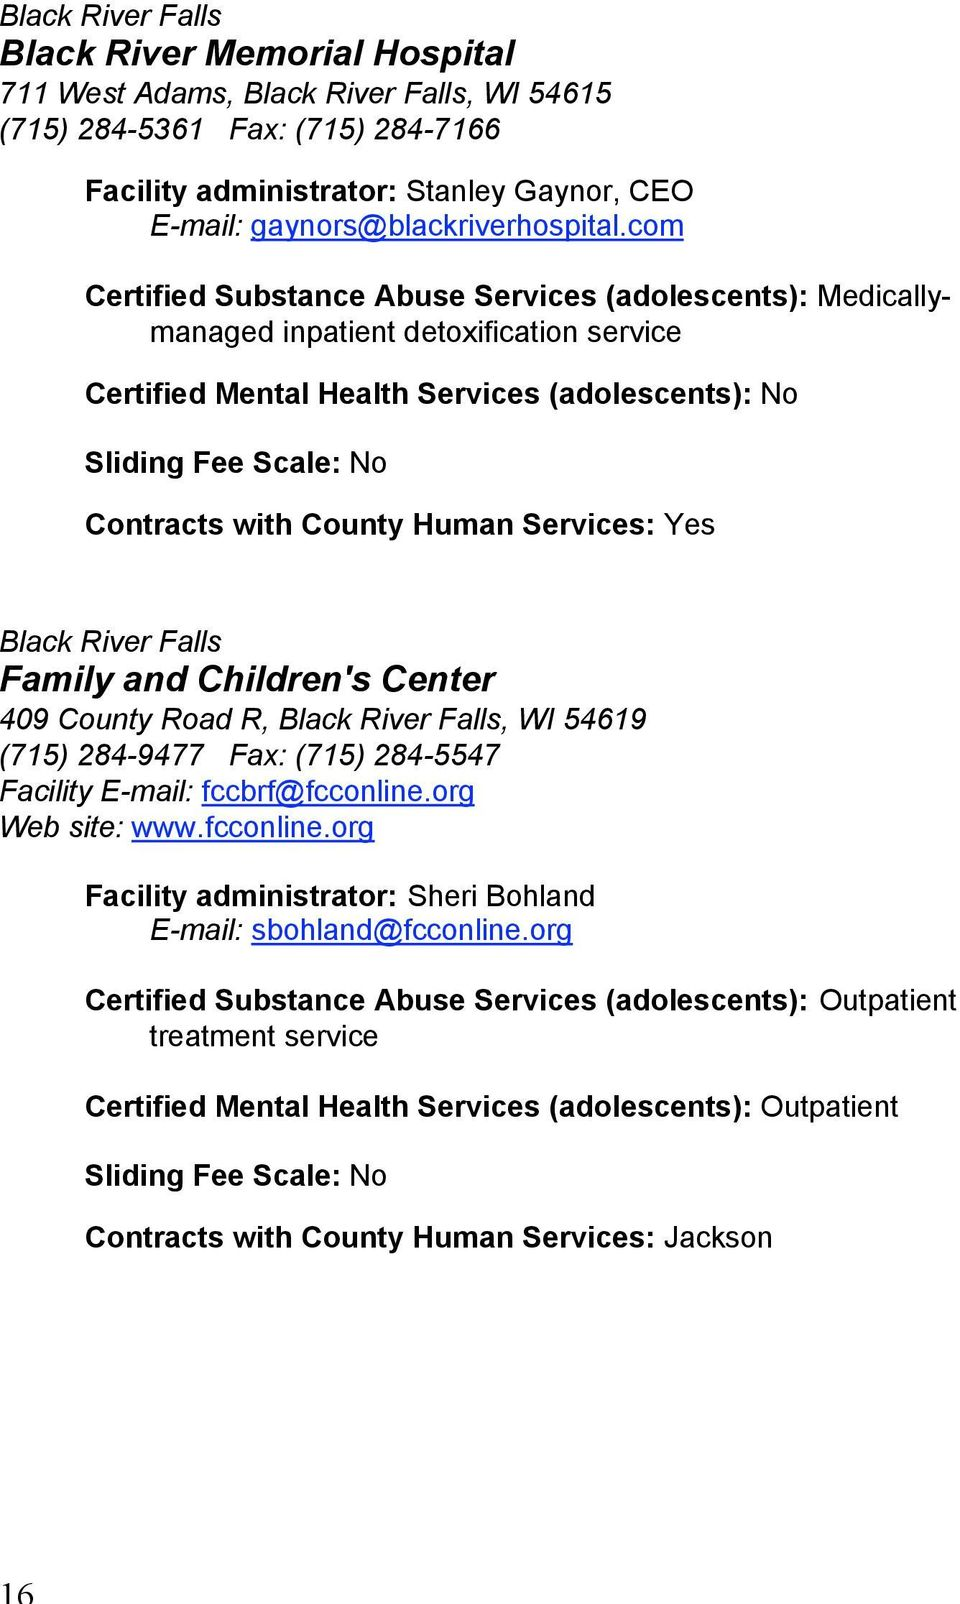 com Certified Substance Abuse Services (adolescents): Medicallymanaged inpatient detoxification service Certified Mental Health Services (adolescents): No Sliding Fee Scale: No Contracts with County